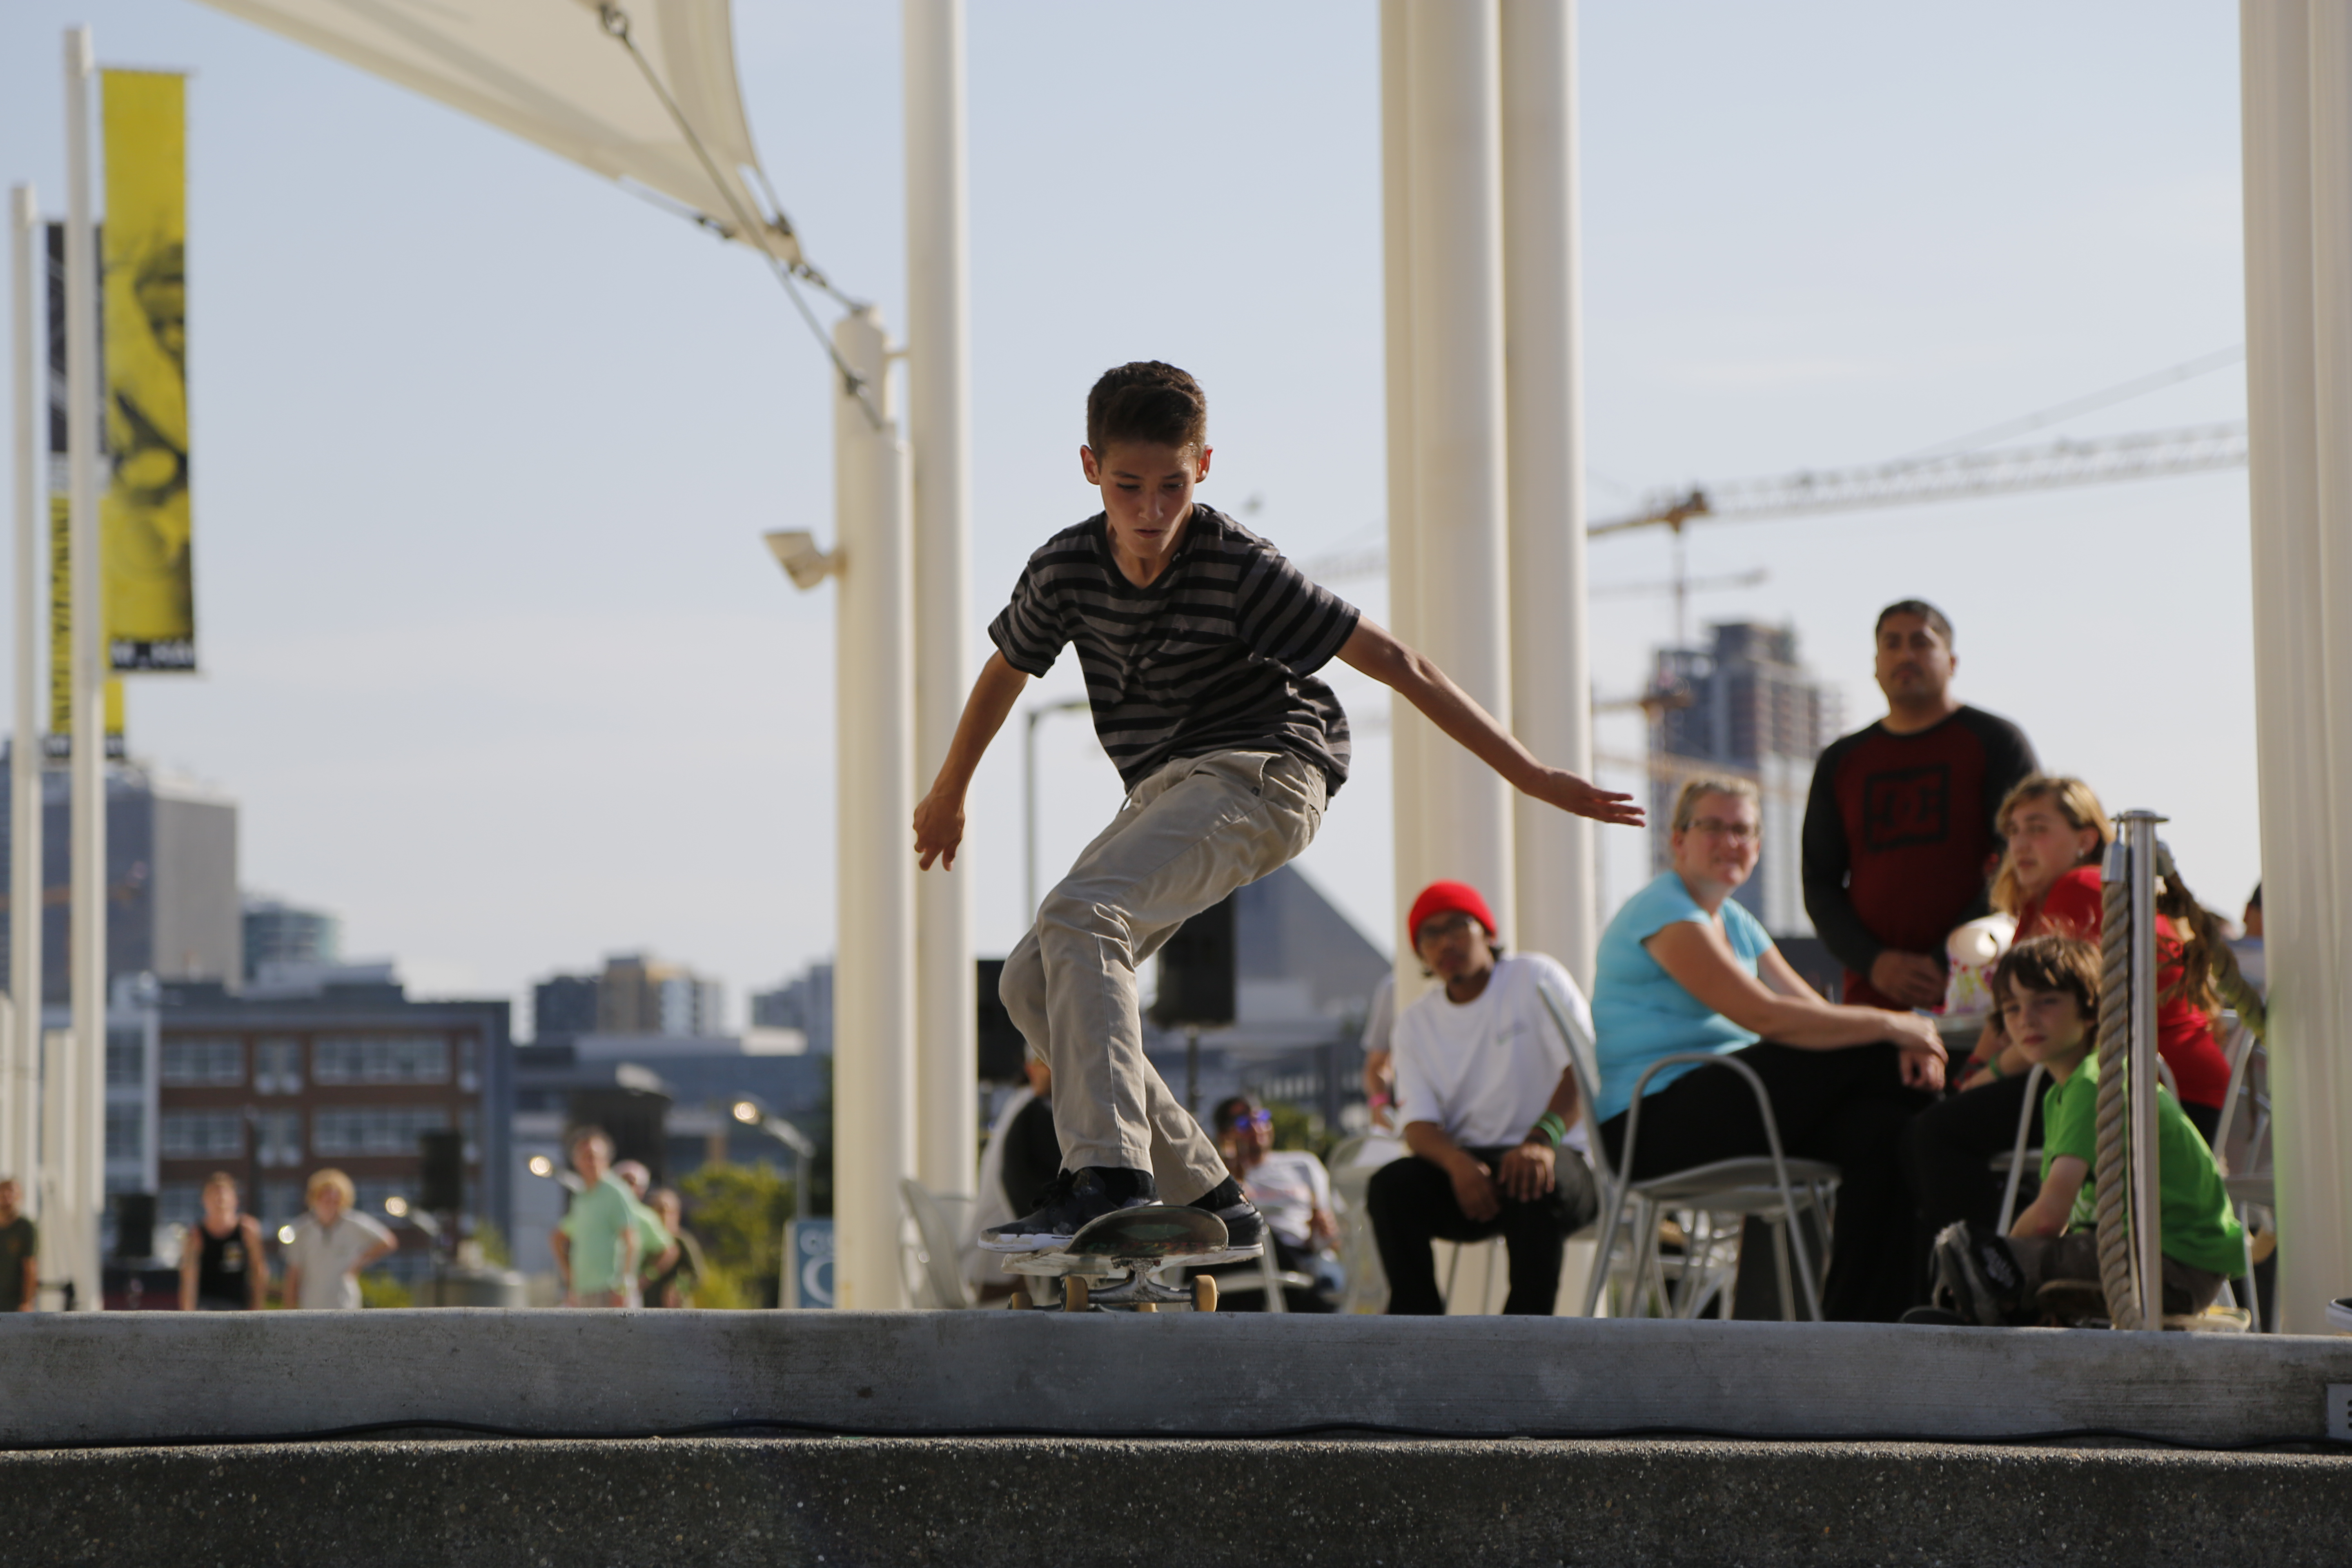 A young boy heads into a trick during a skateboarding contest at Innoskate in Seattle